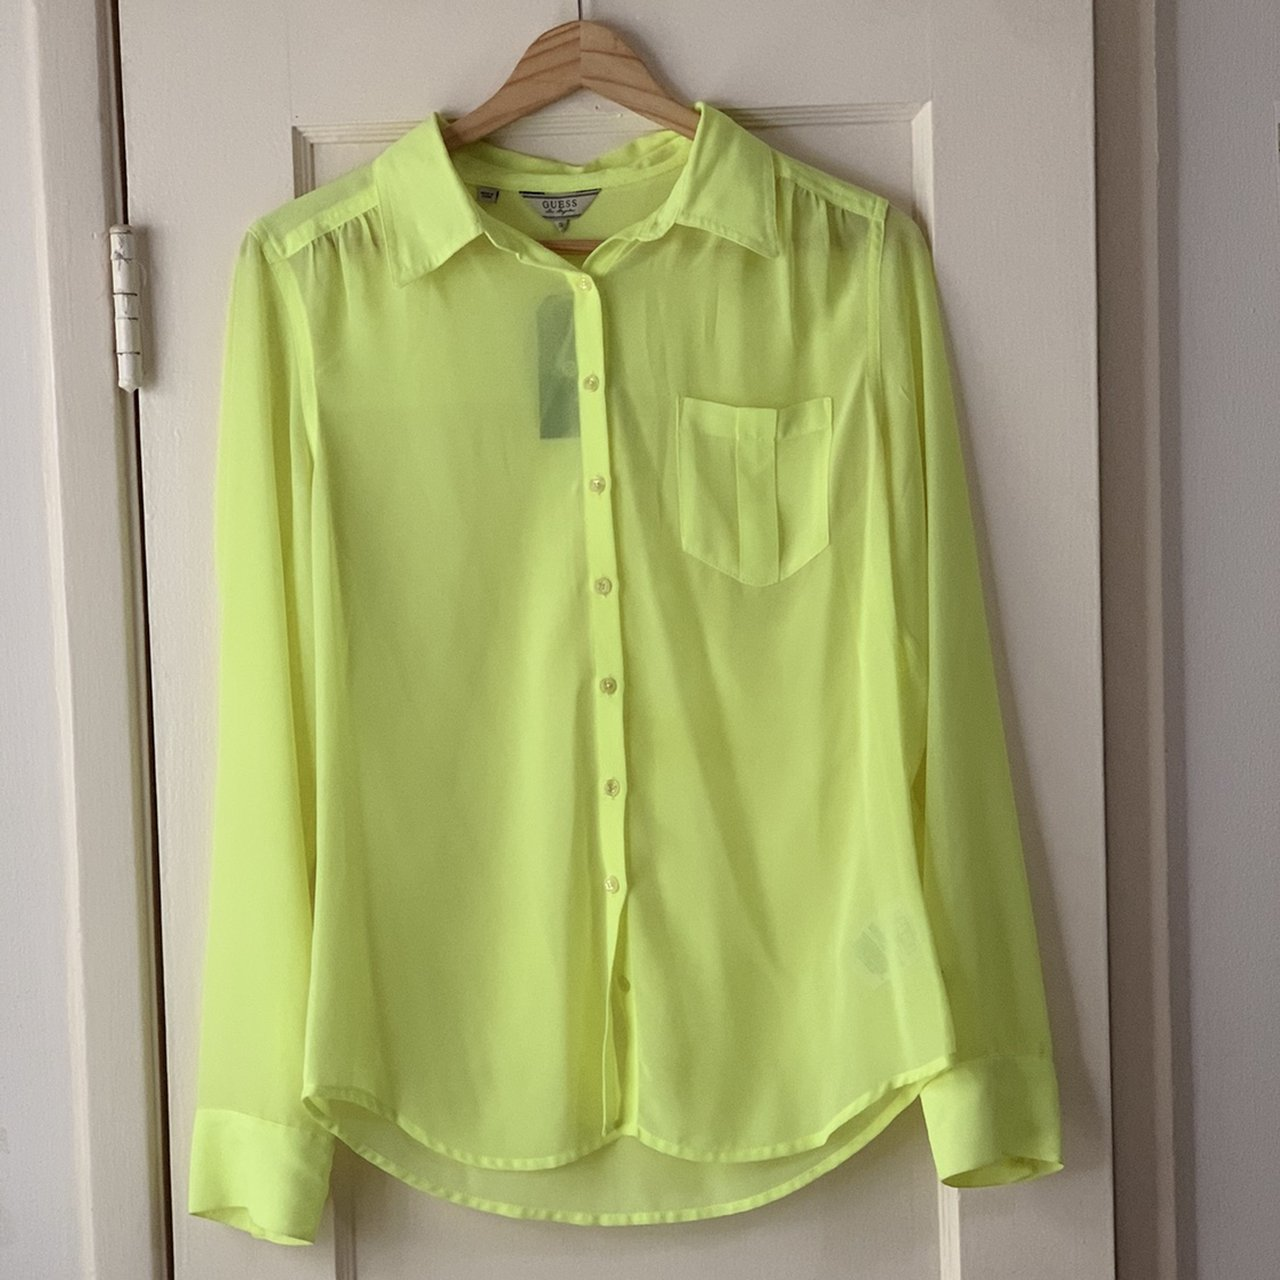 7b0def2b8 Guess neon yellow sheer chiffon button down blouse. Never on - Depop